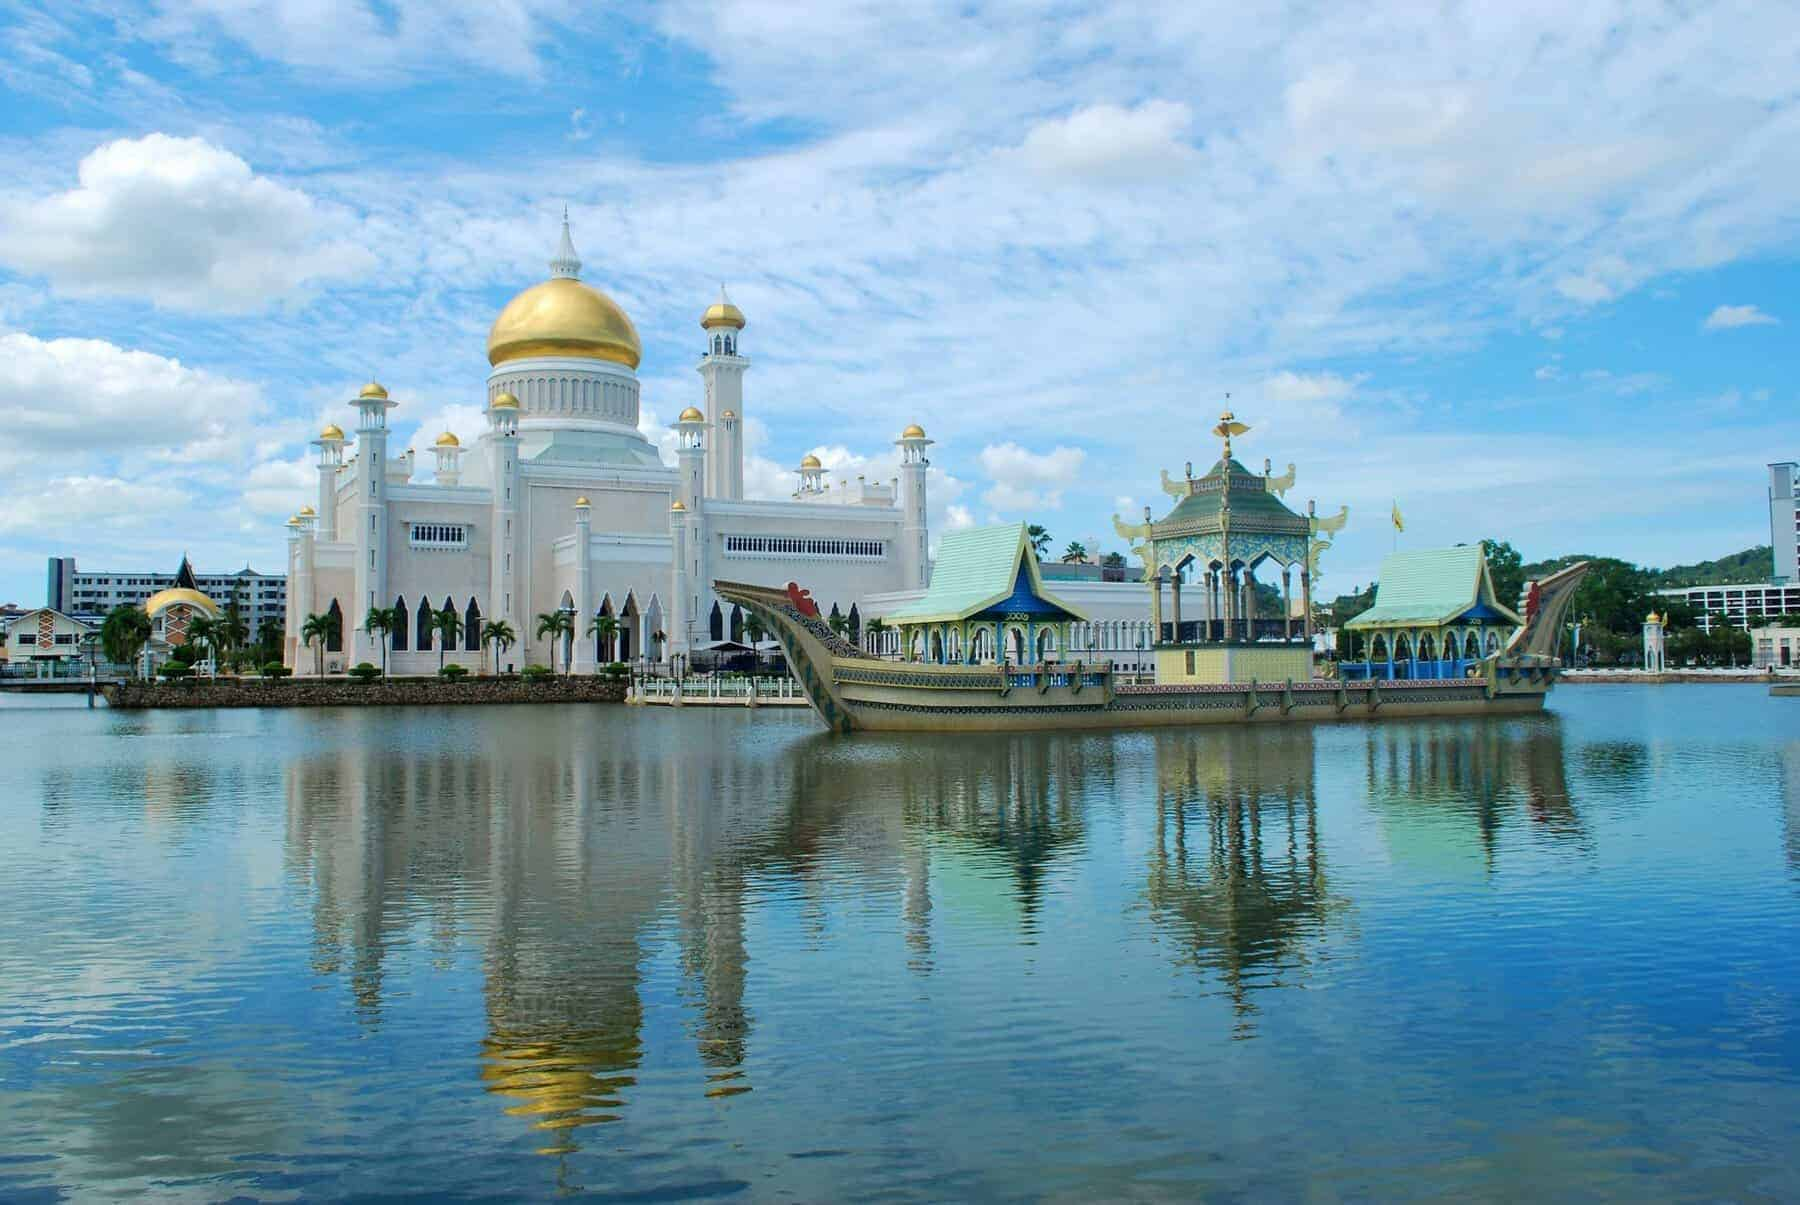 One of the smallest countries in Asia: The white golden-domed Sultan Omar Ali Saifuddien Mosque in Bandar Seri Begawan, the capital of Brunei, on the island of Borneo.